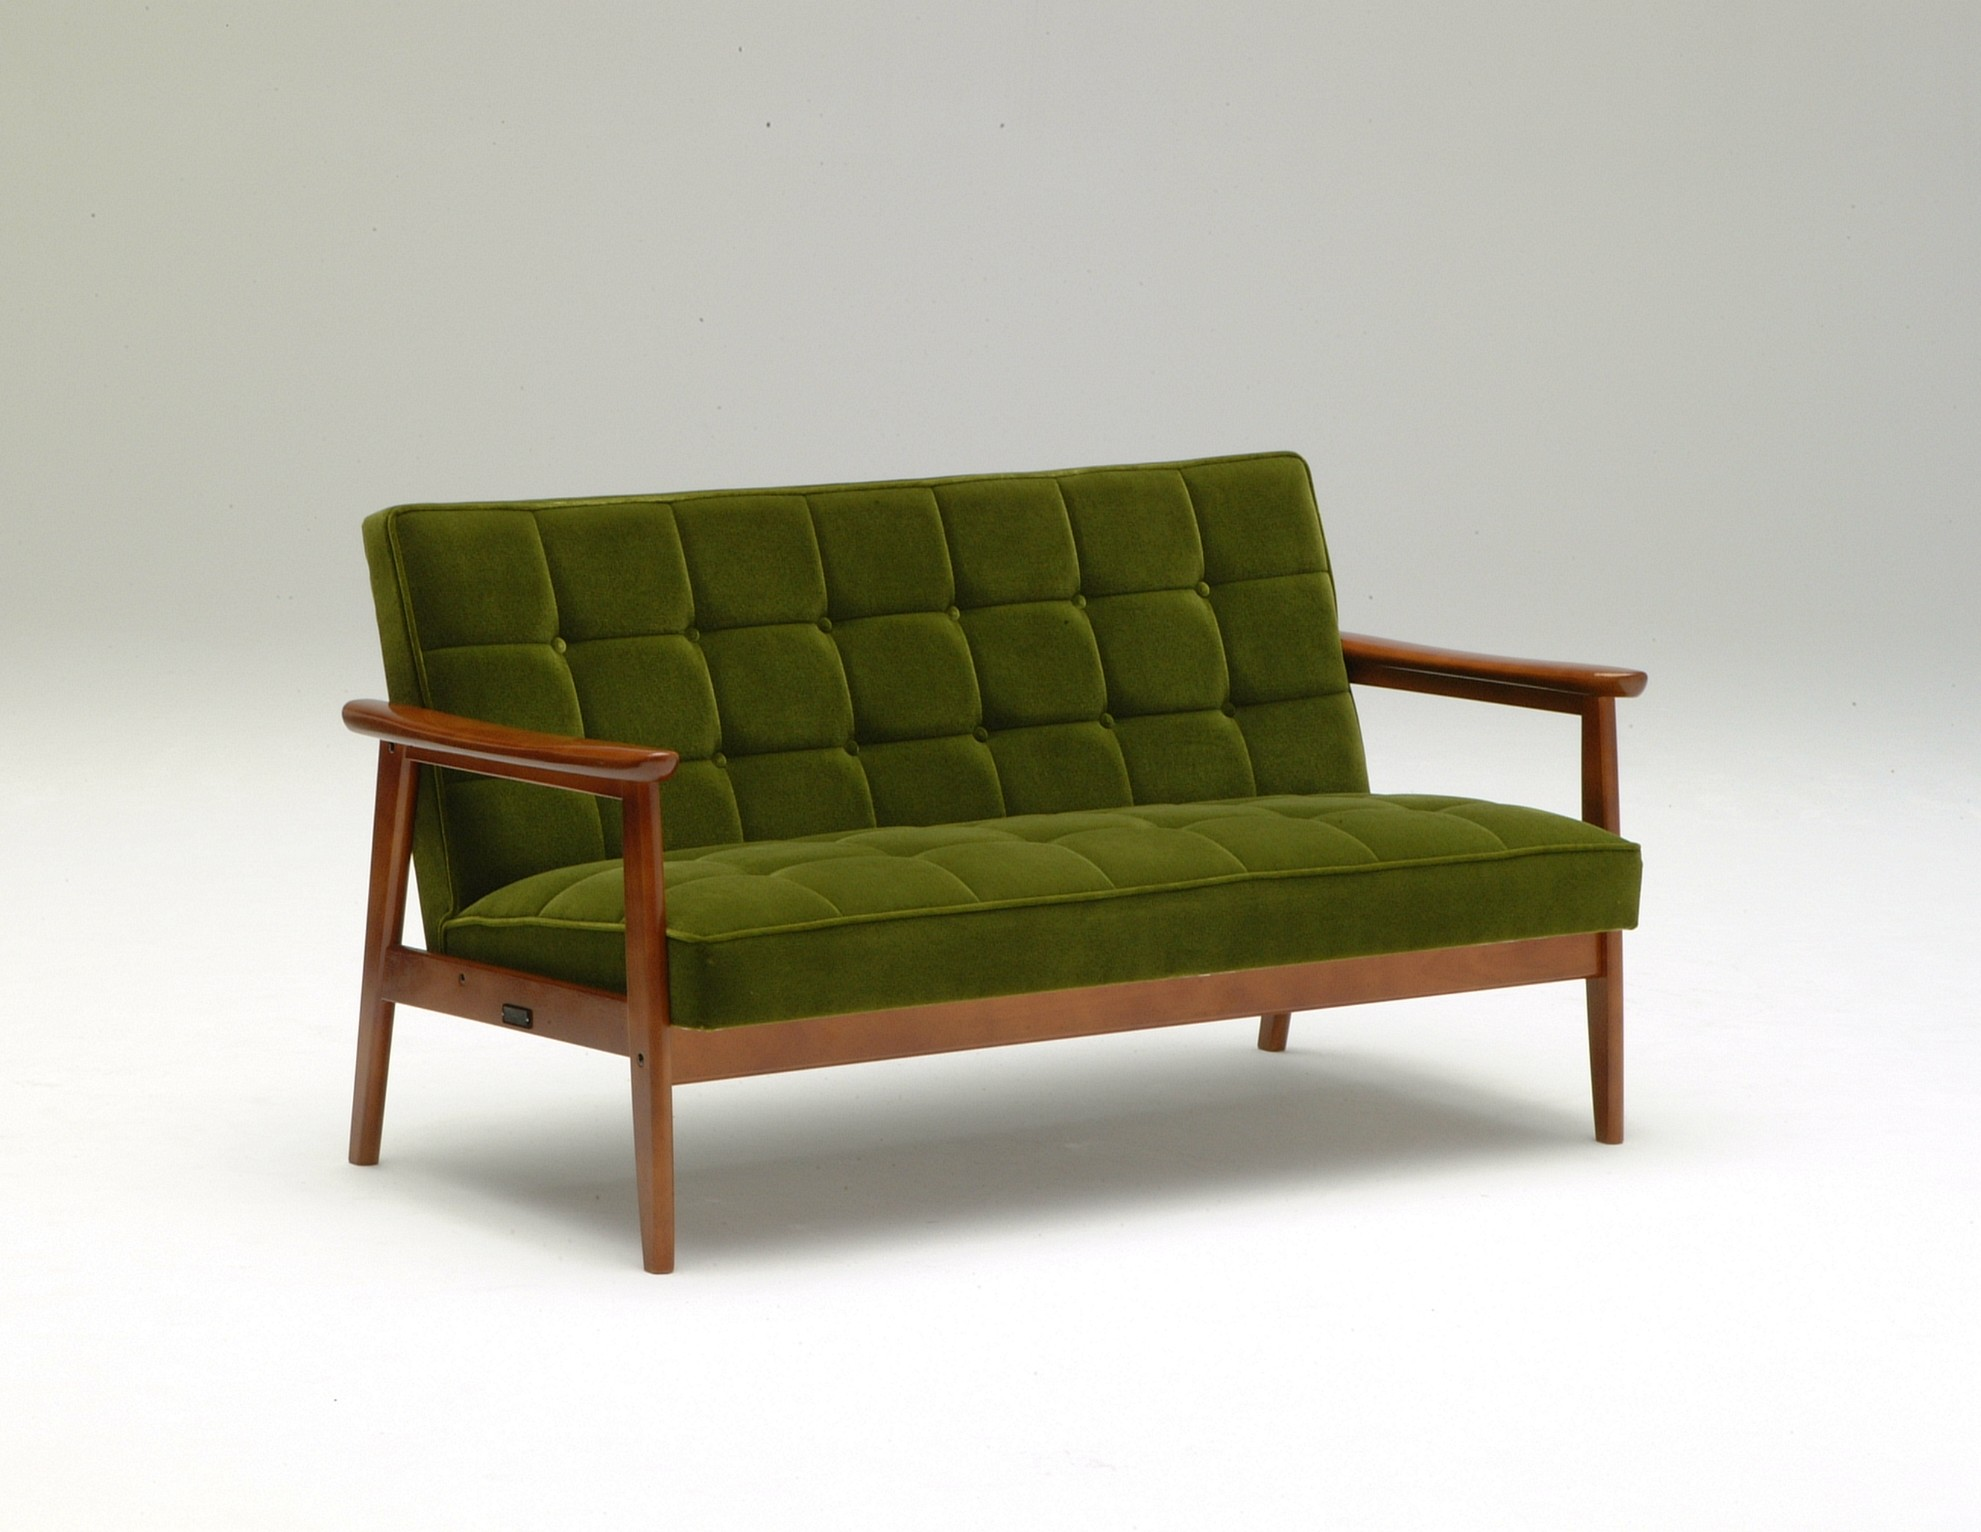 W36153QW K- chair_two seater_moquette green